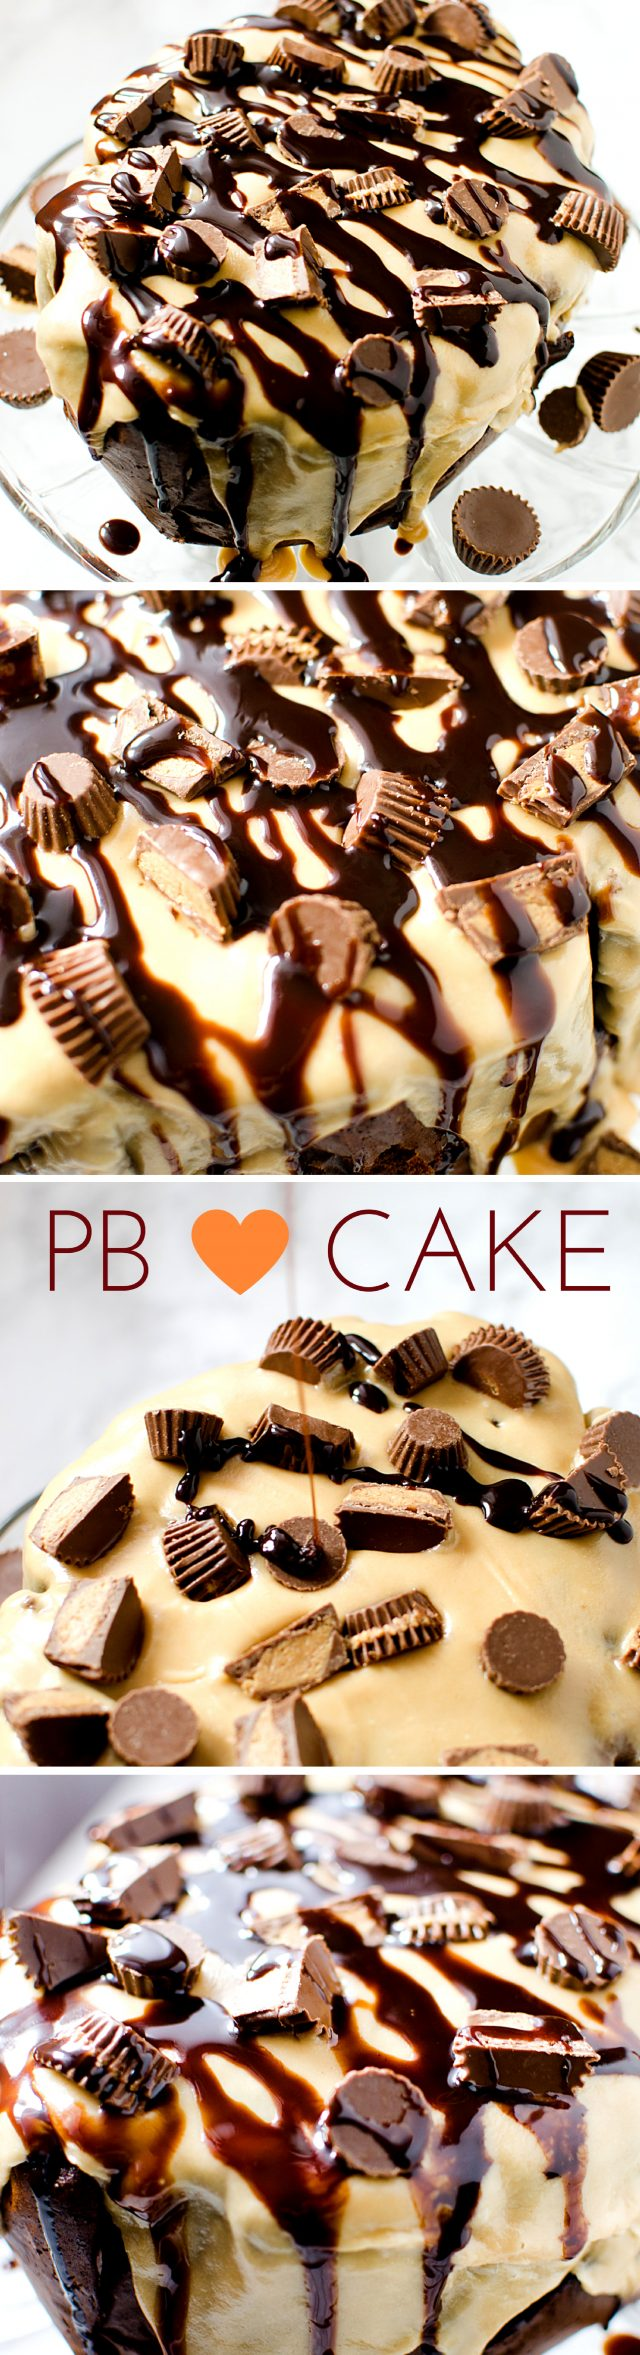 A chocolate and peanut butter flavored cake covered with peanut butter glaze and lots of chopped peanut butter cups.